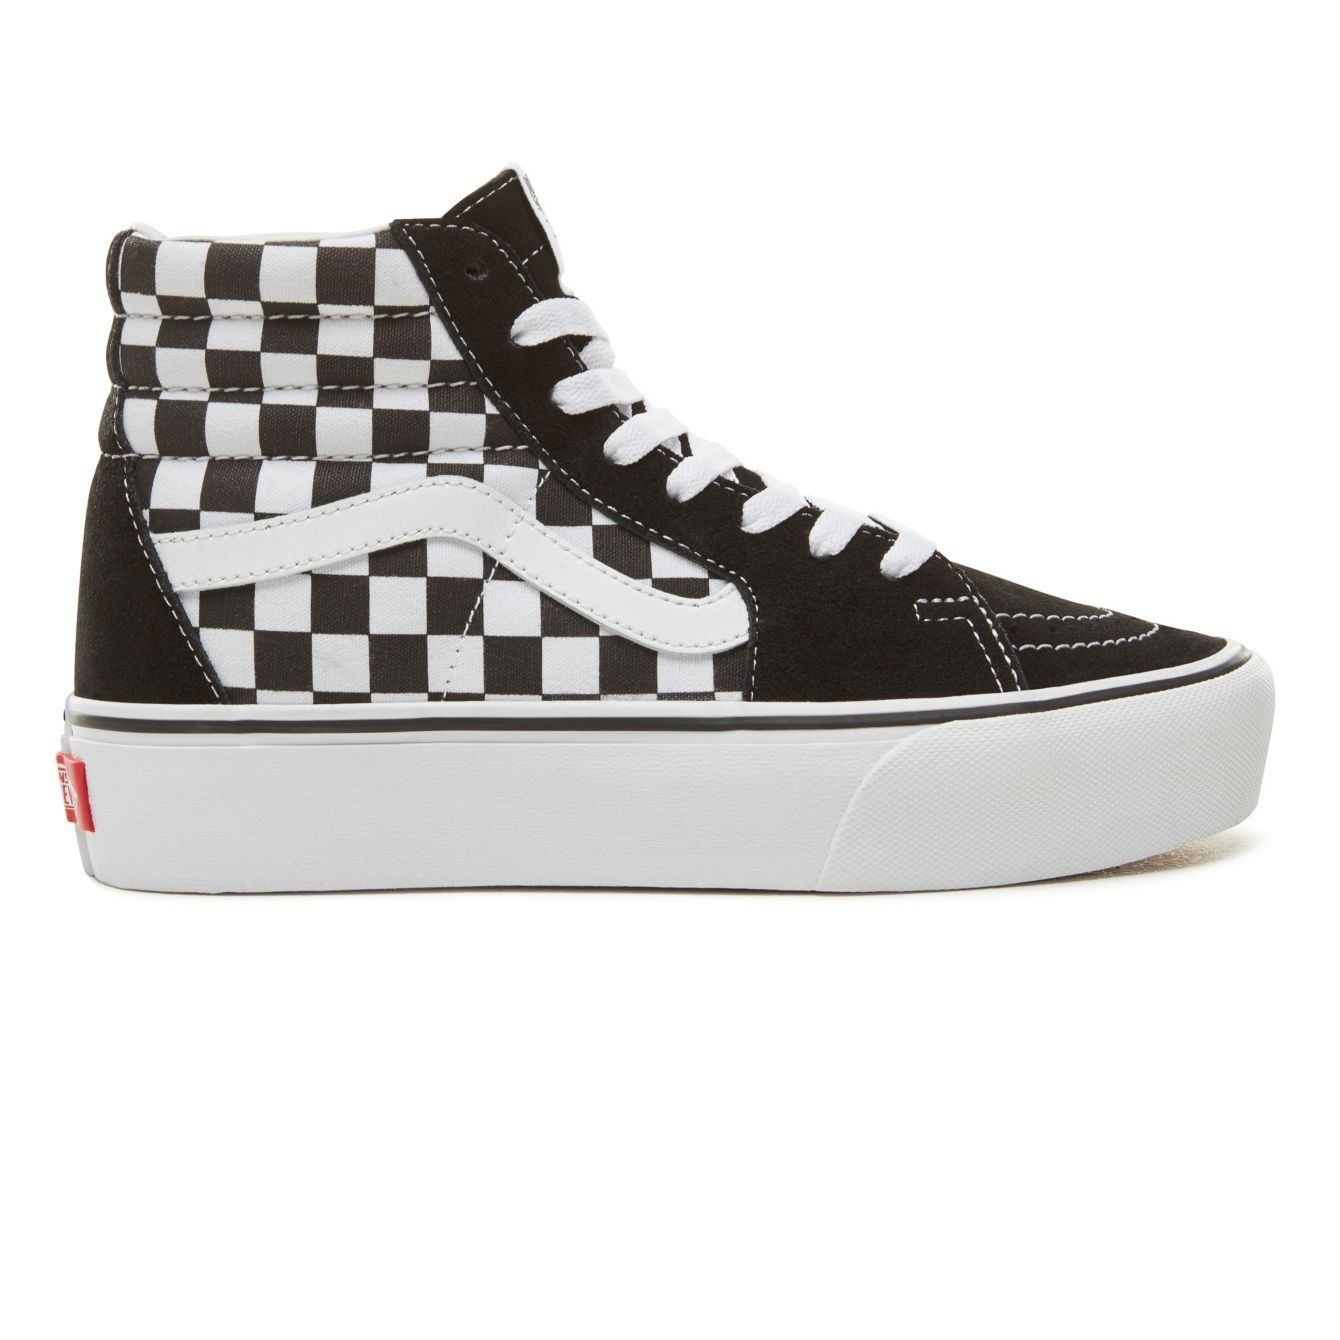 Buy Vans Sk8-Hi Platform 2.0 Checkerboard/True White Shoes ...